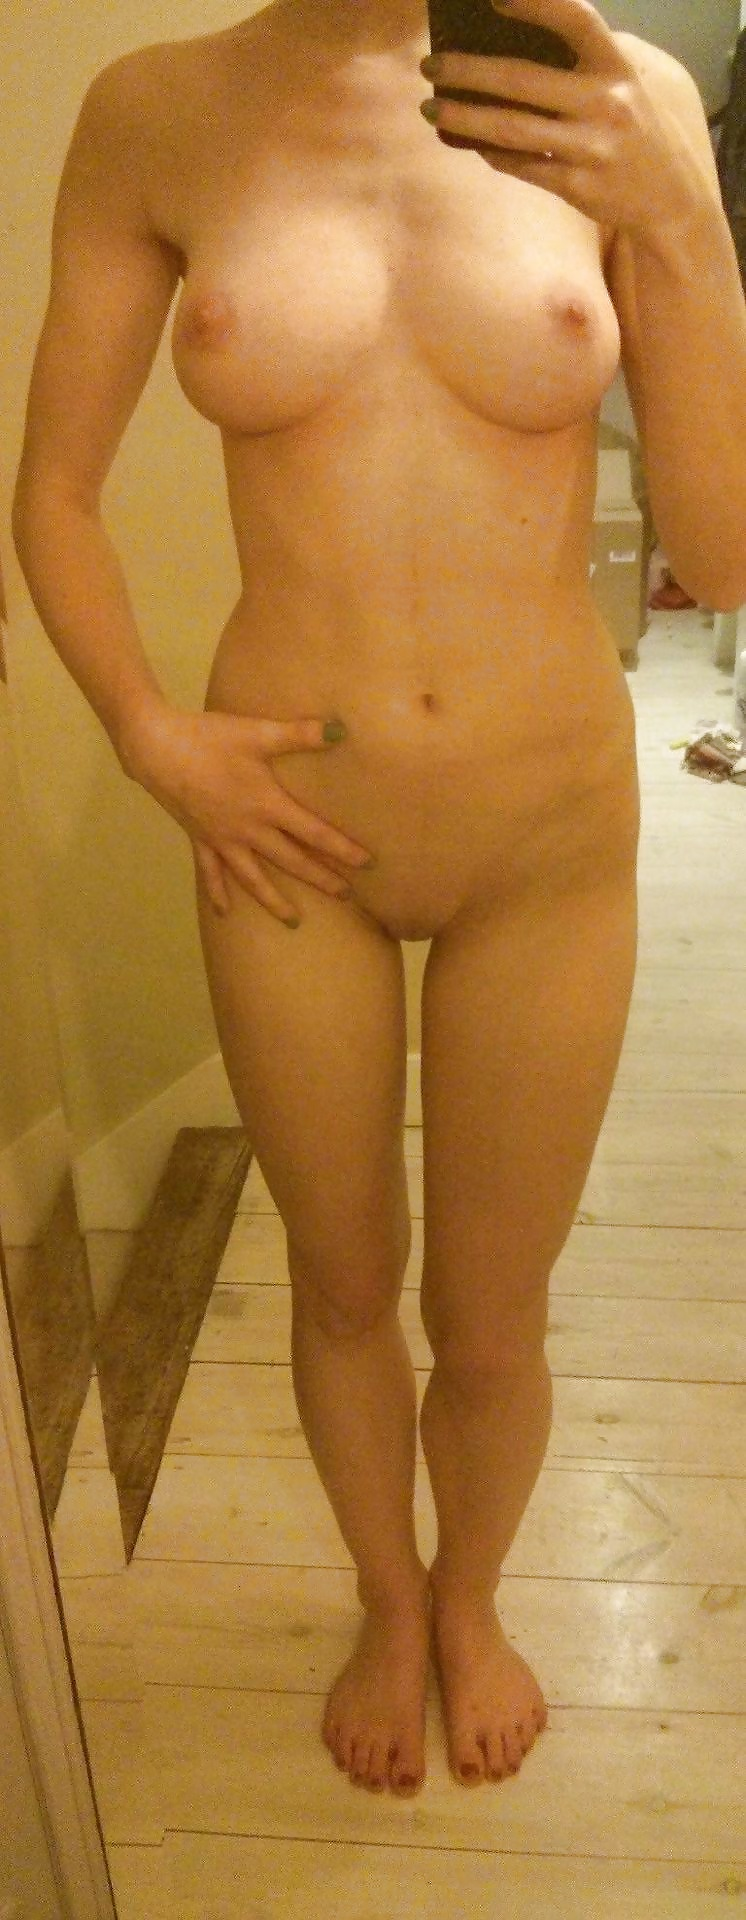 My [f]av of this evening's photos